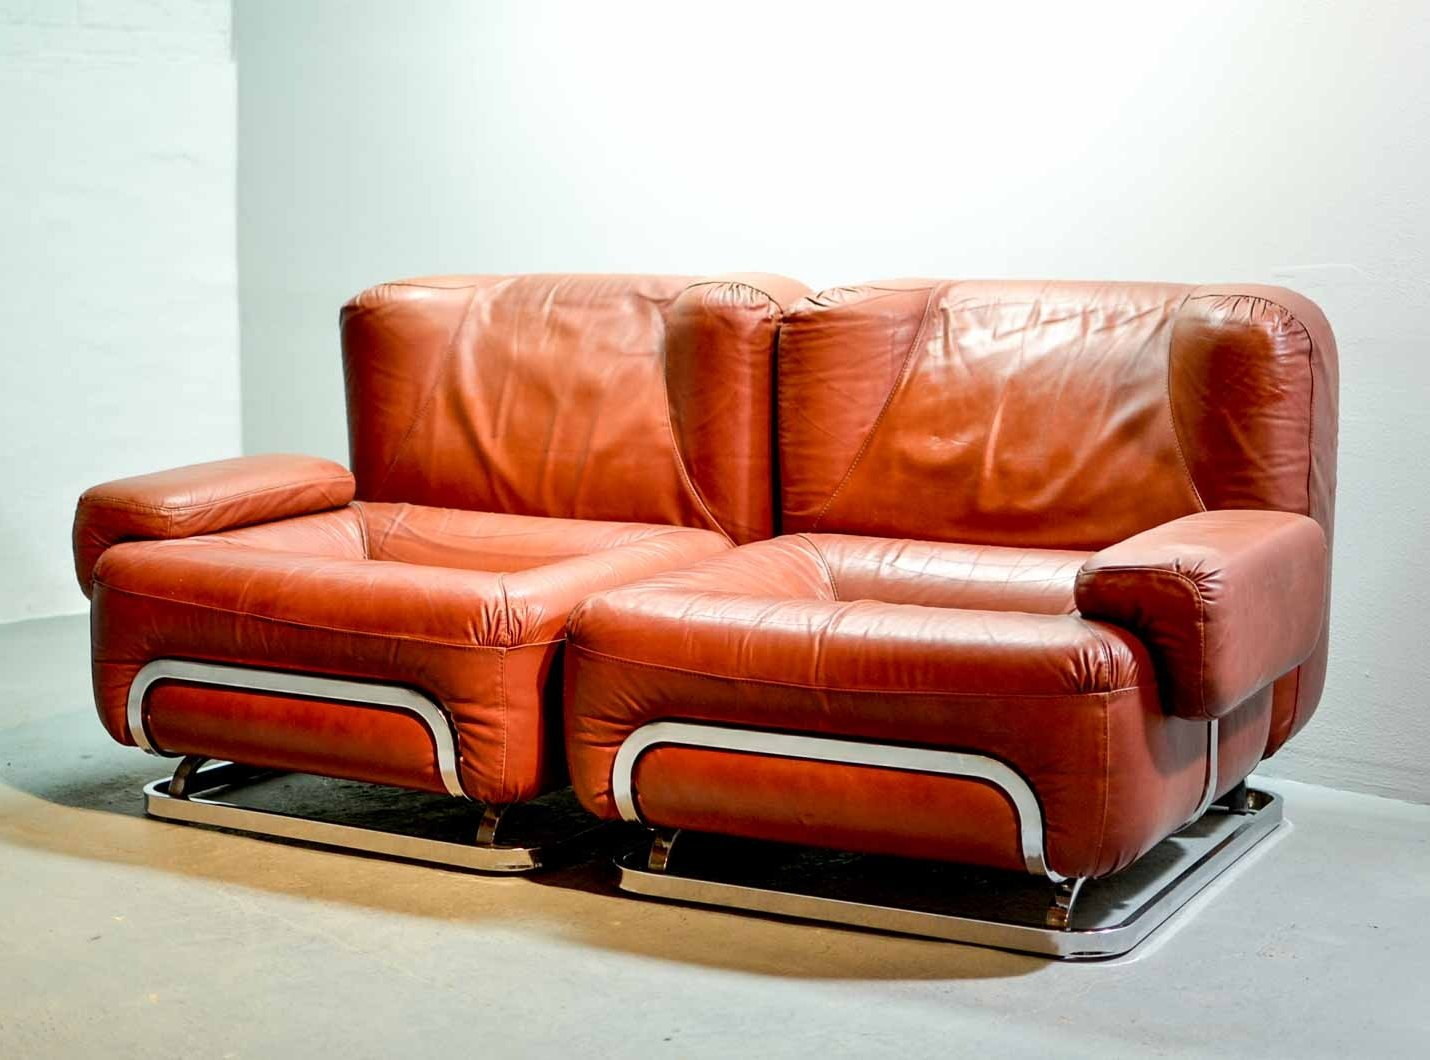 Mid Century Chestnut Brown Leather 2 Seater Sofa 1970s 73218